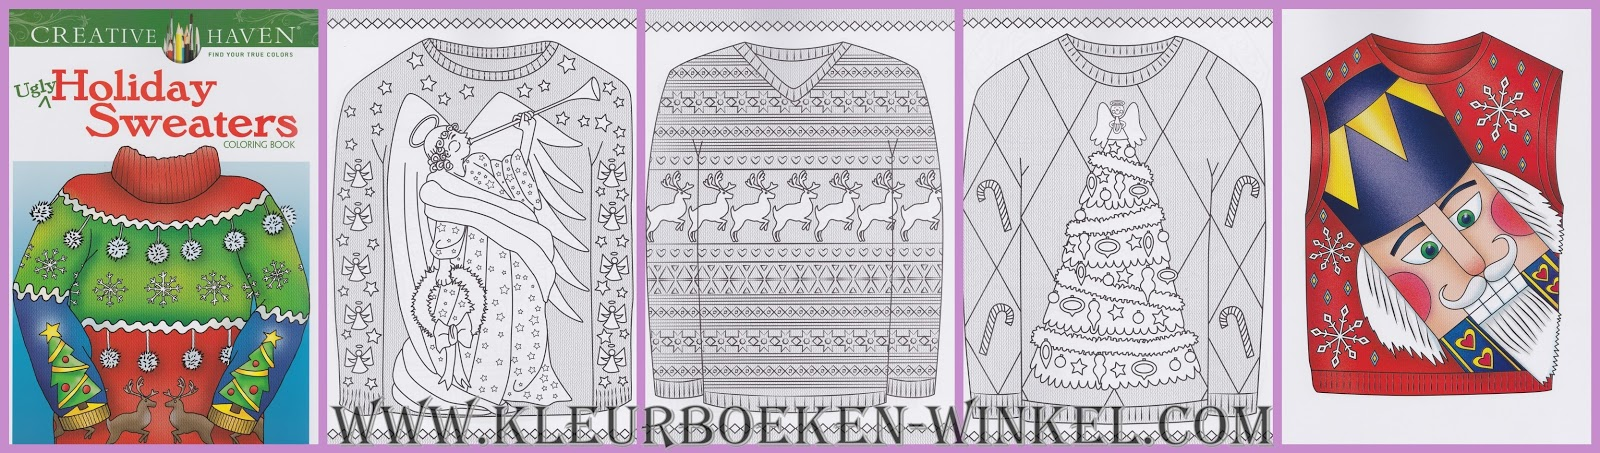 CH 106 holiday sweaters, kleurboek Creative Haven, kerst en winter